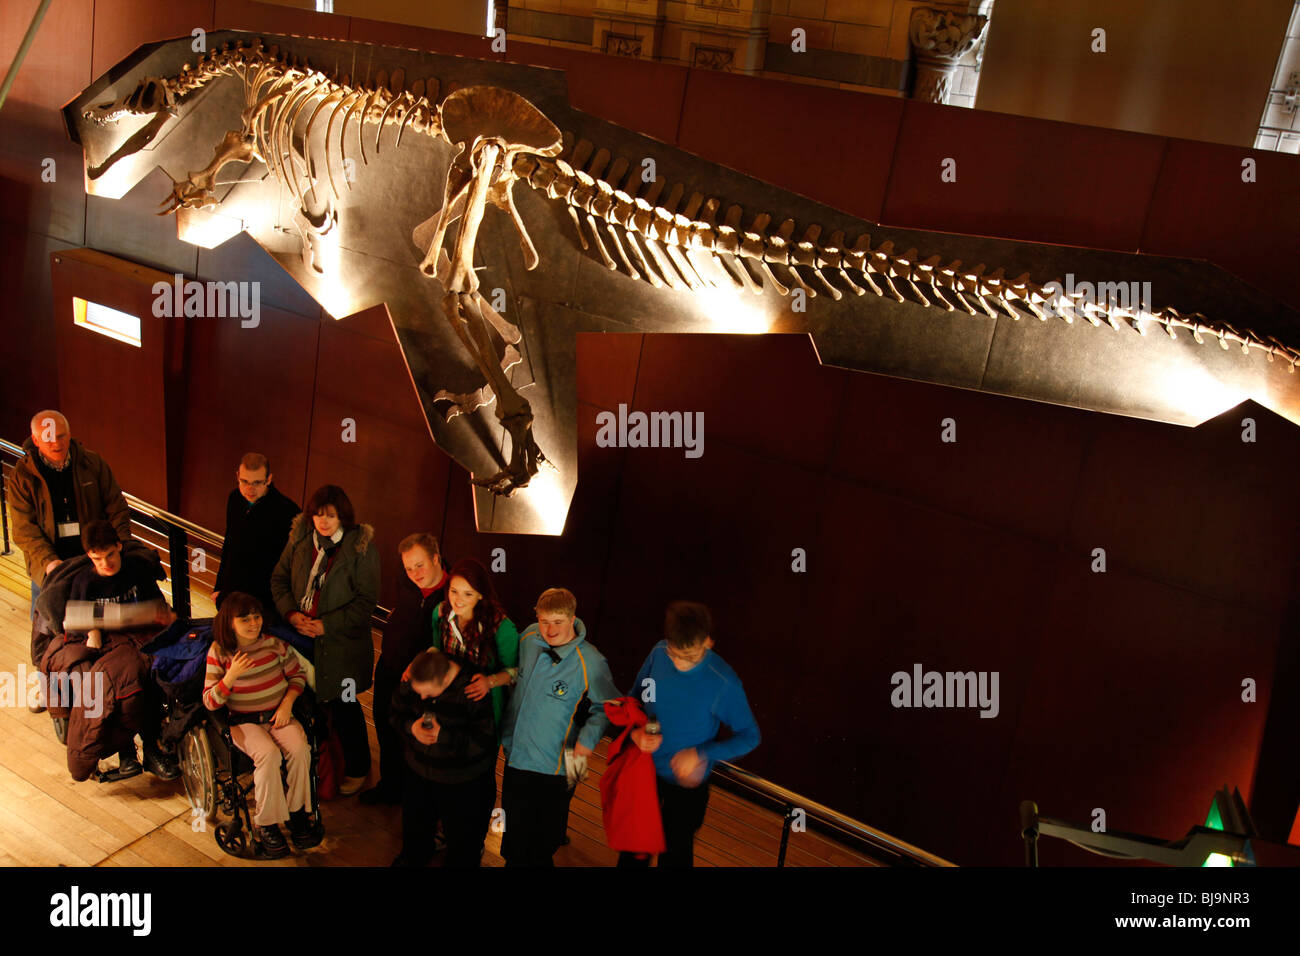 The Natural History Museum, London. Visitors in the Dinosaur gallery. - Stock Image